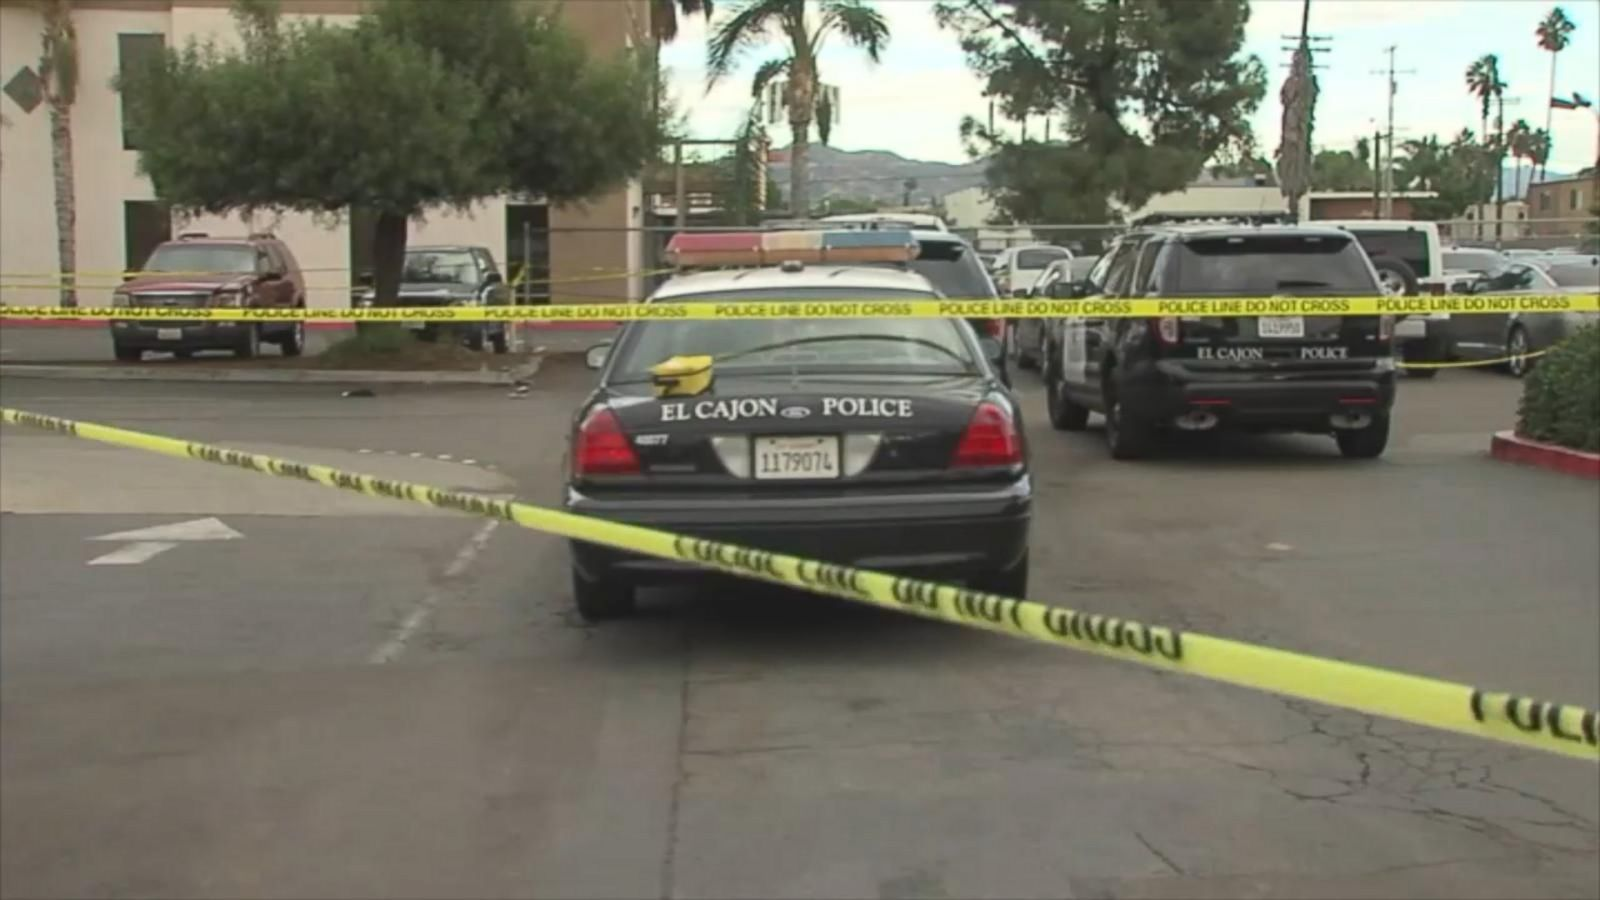 Alfred Olango was shot and killed by an El Cajon police officer.